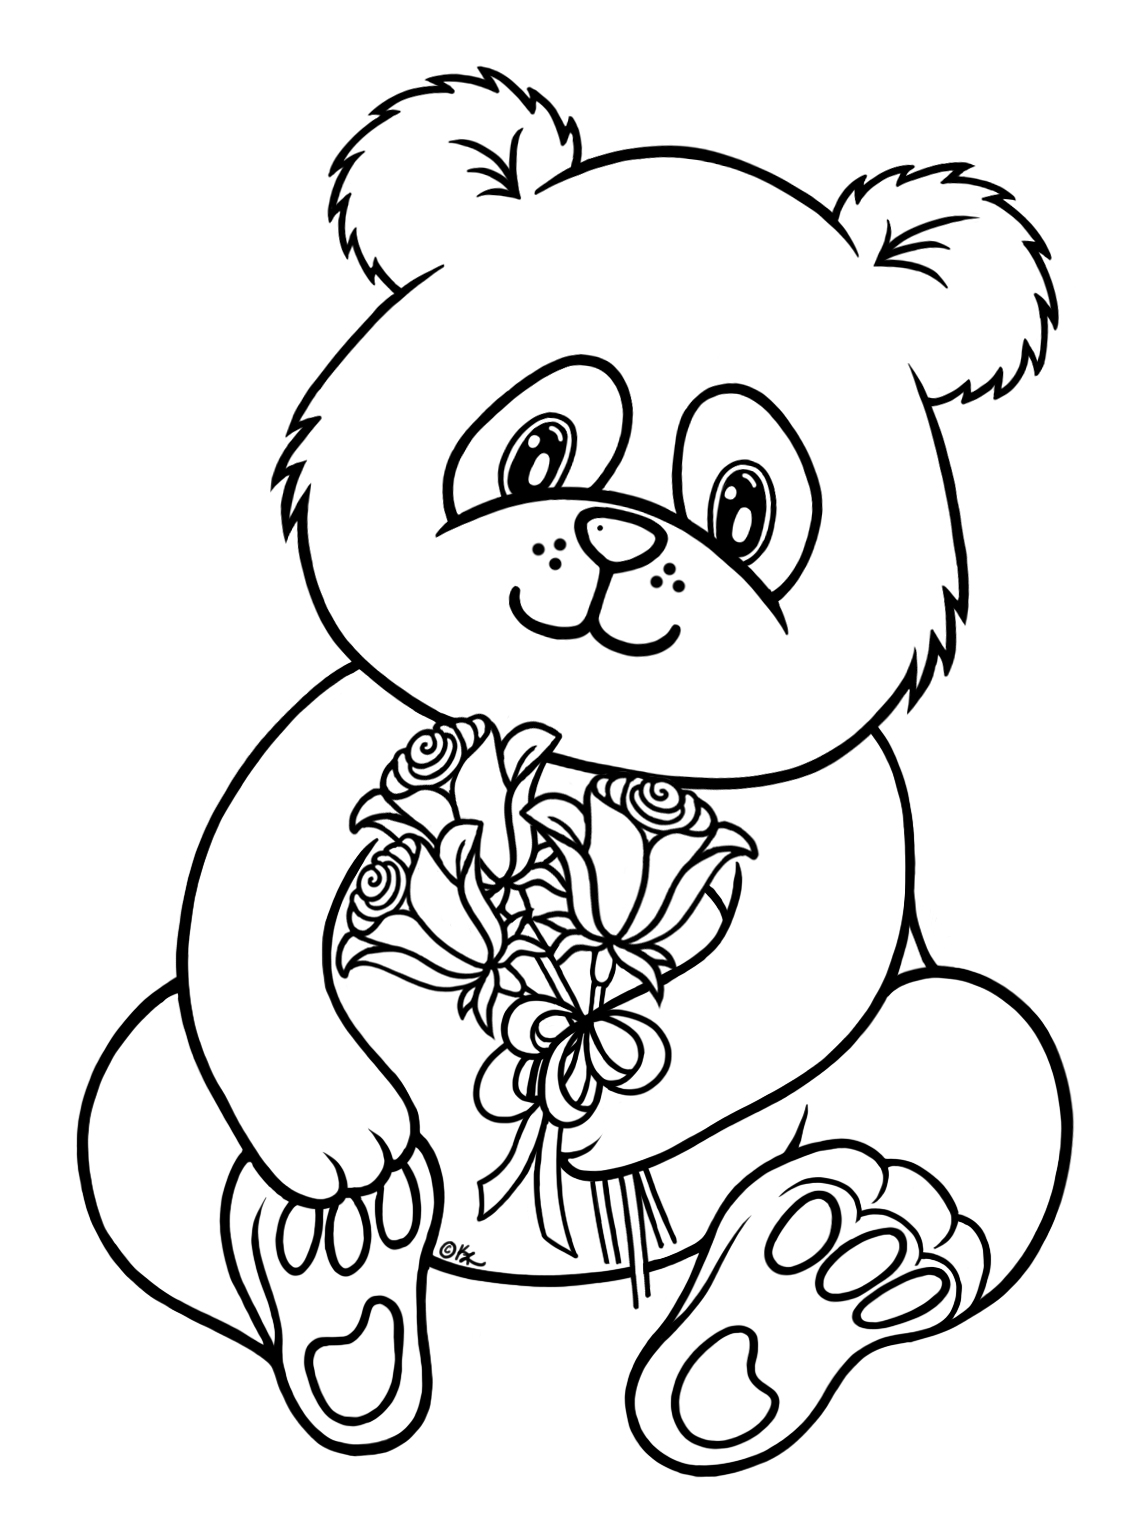 1135x1531 Cute Panda Coloring Pages